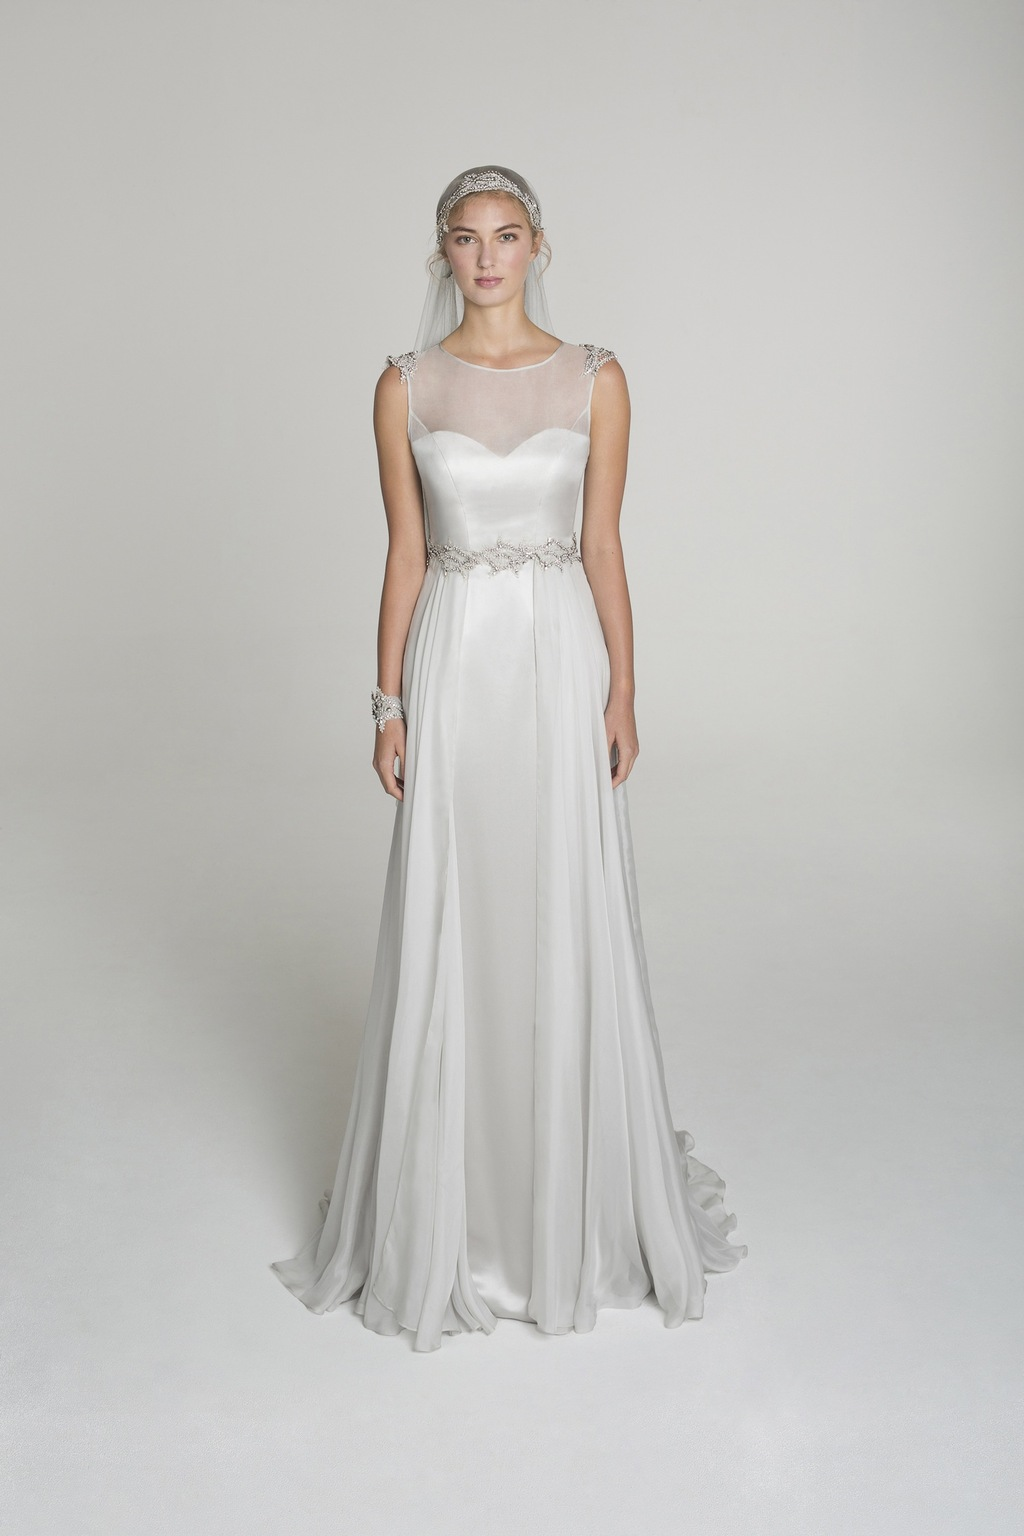 Illusion_neckline_wedding_dress_from_alana_aoun.full